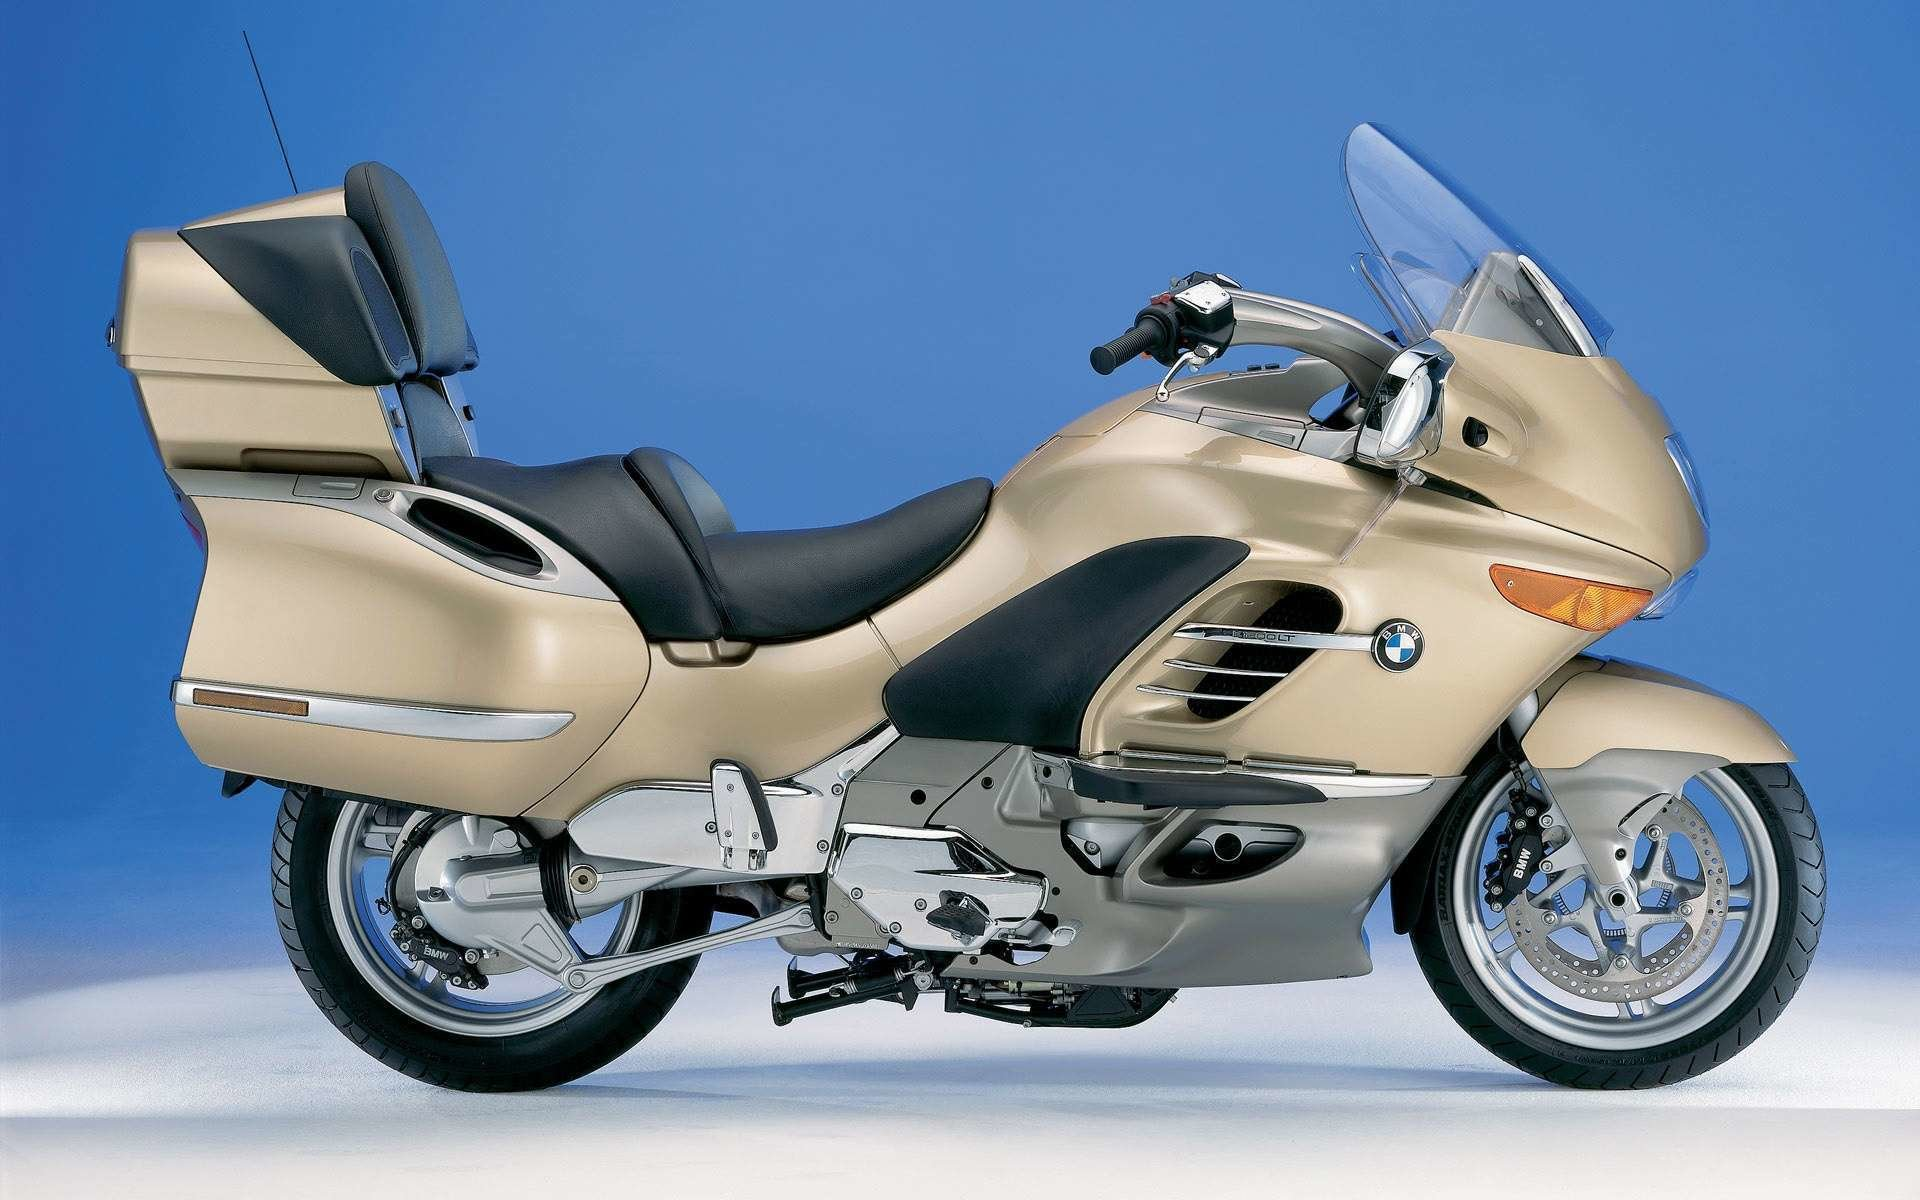 Latest View Of Bmw Bike Hd Wallpapers Hd Car Wallpapers Free Download